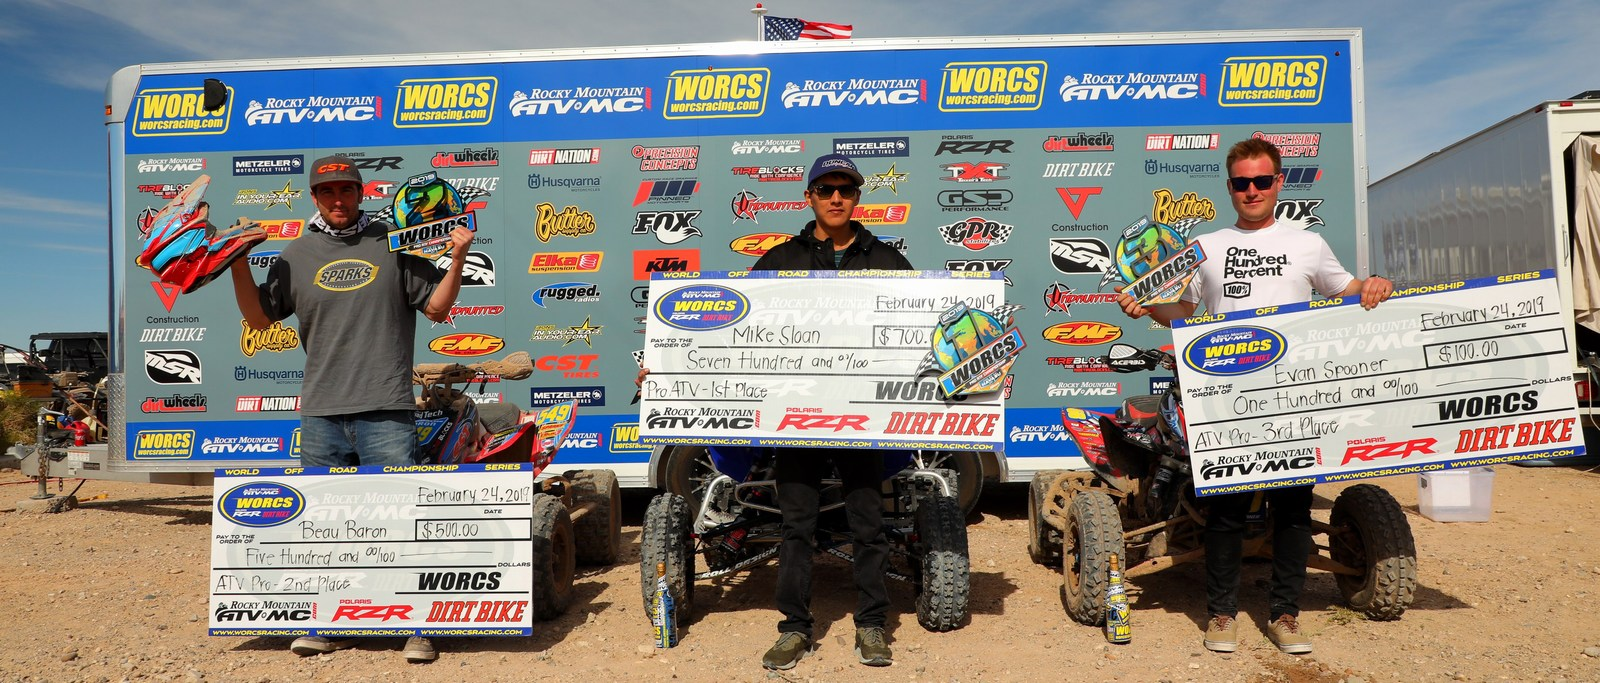 2019-02-podium-pro-atv-worcs-racing